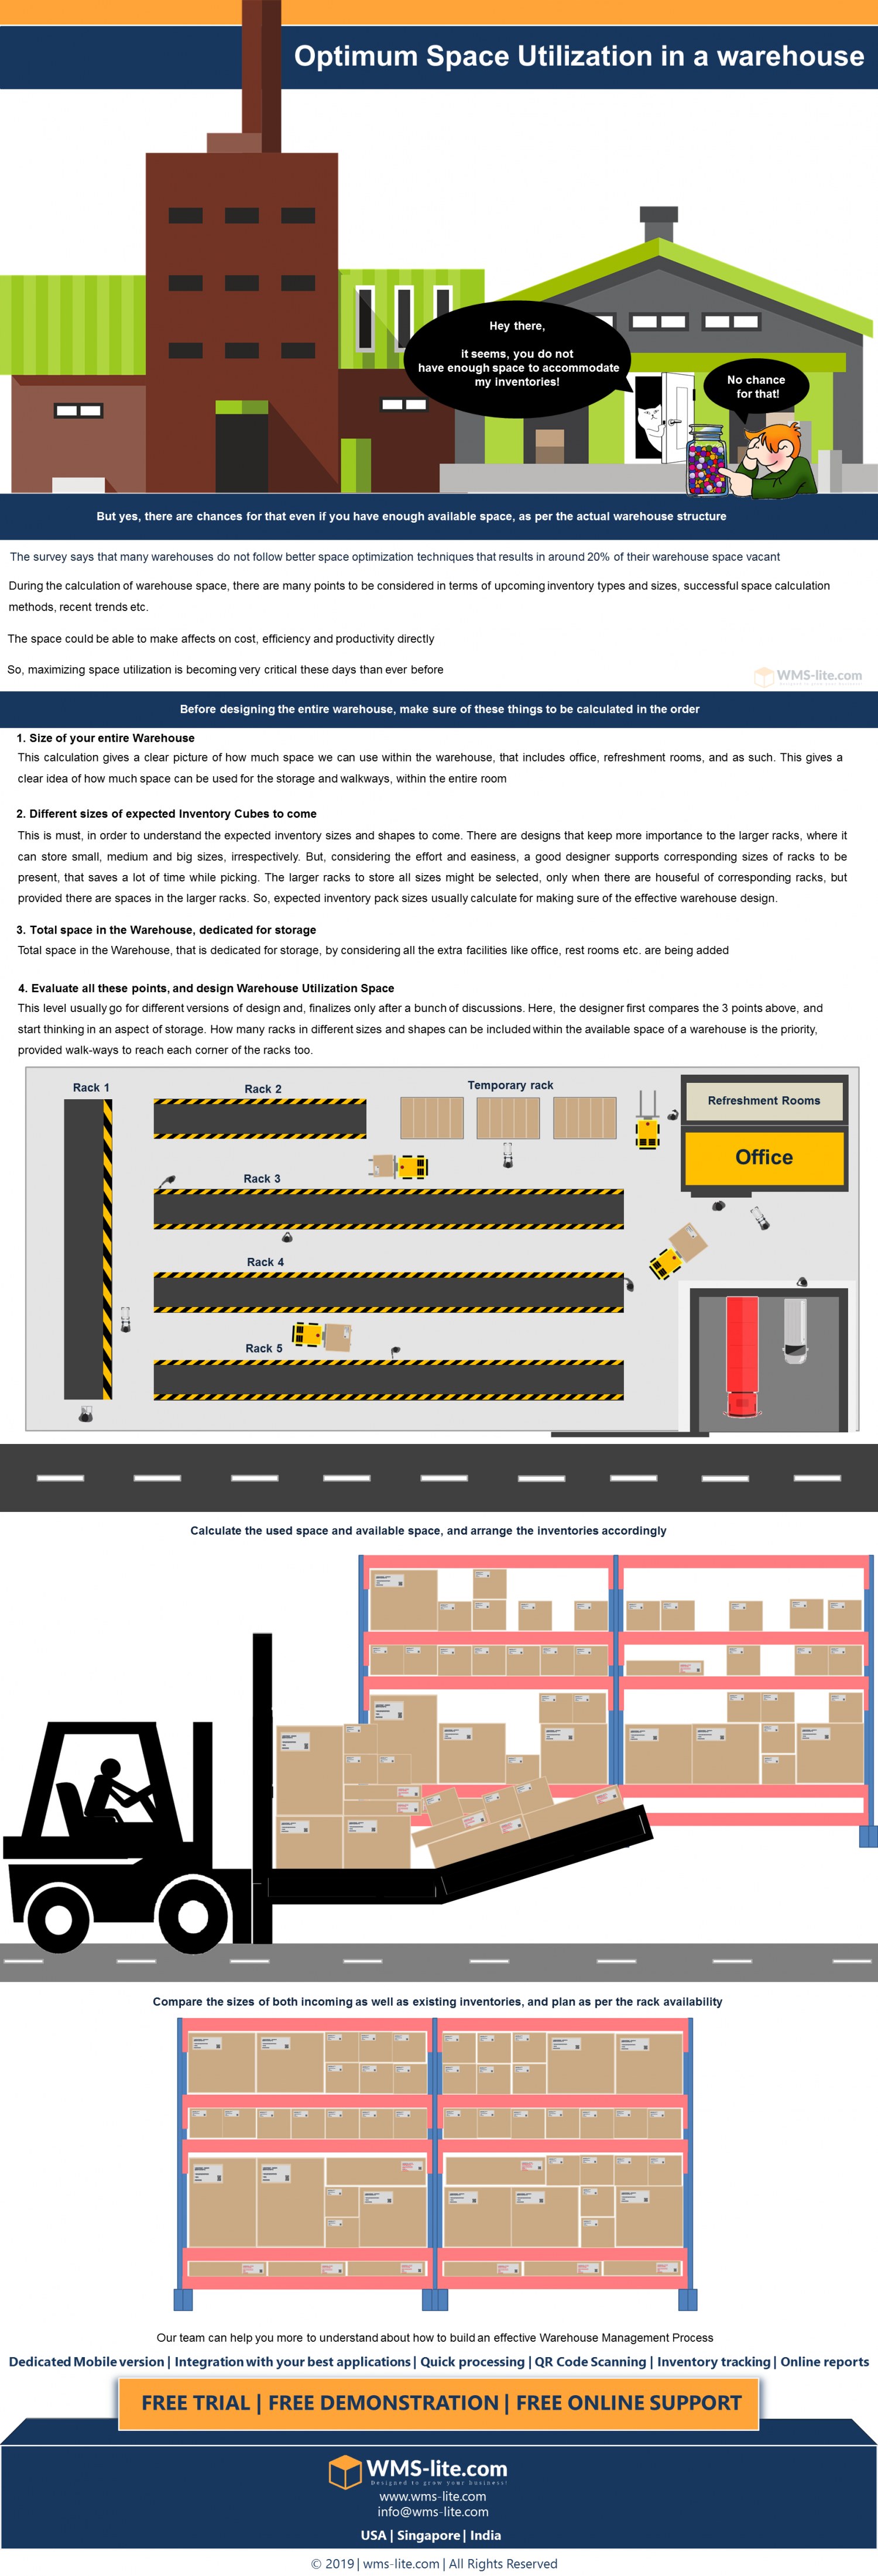 How to save the space in your Warehouse for an Optimum utilization Infographic